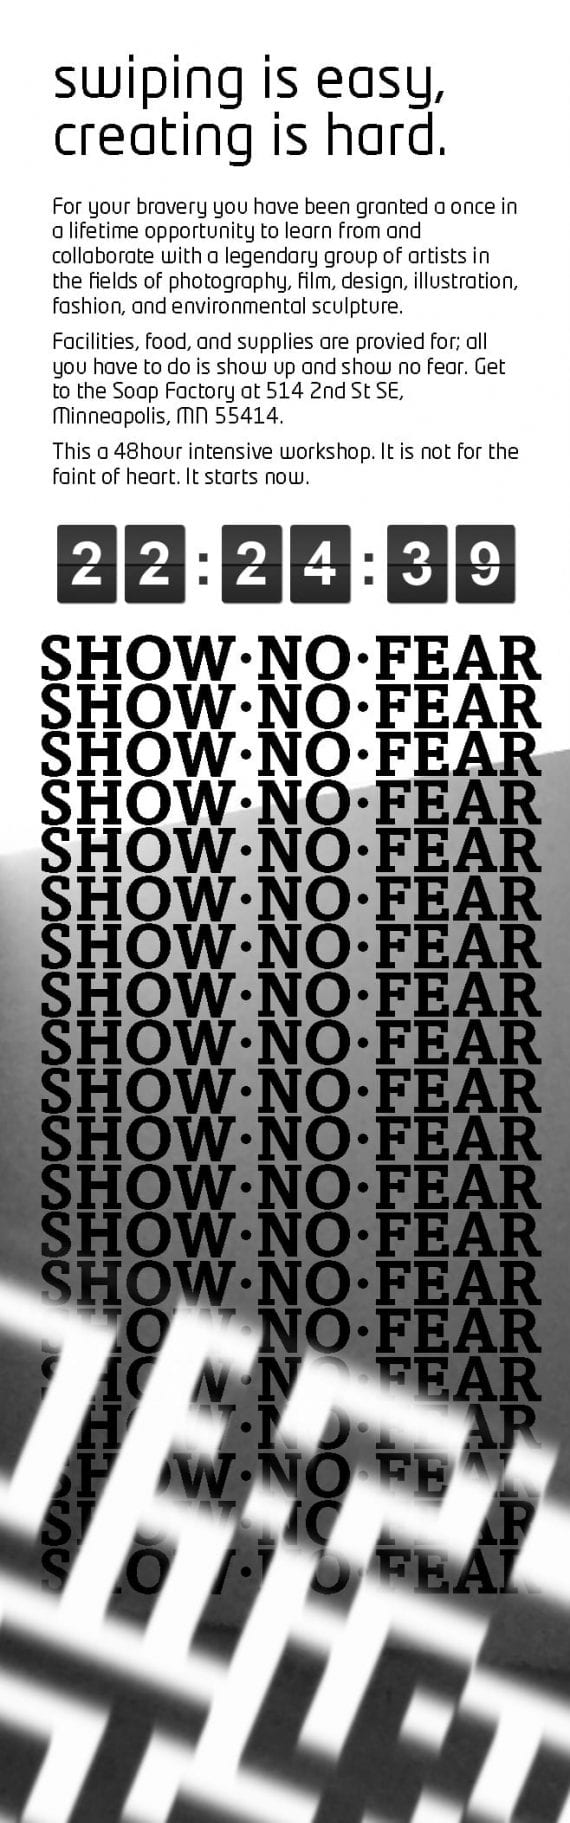 ShowNoFearShow Website Mockup